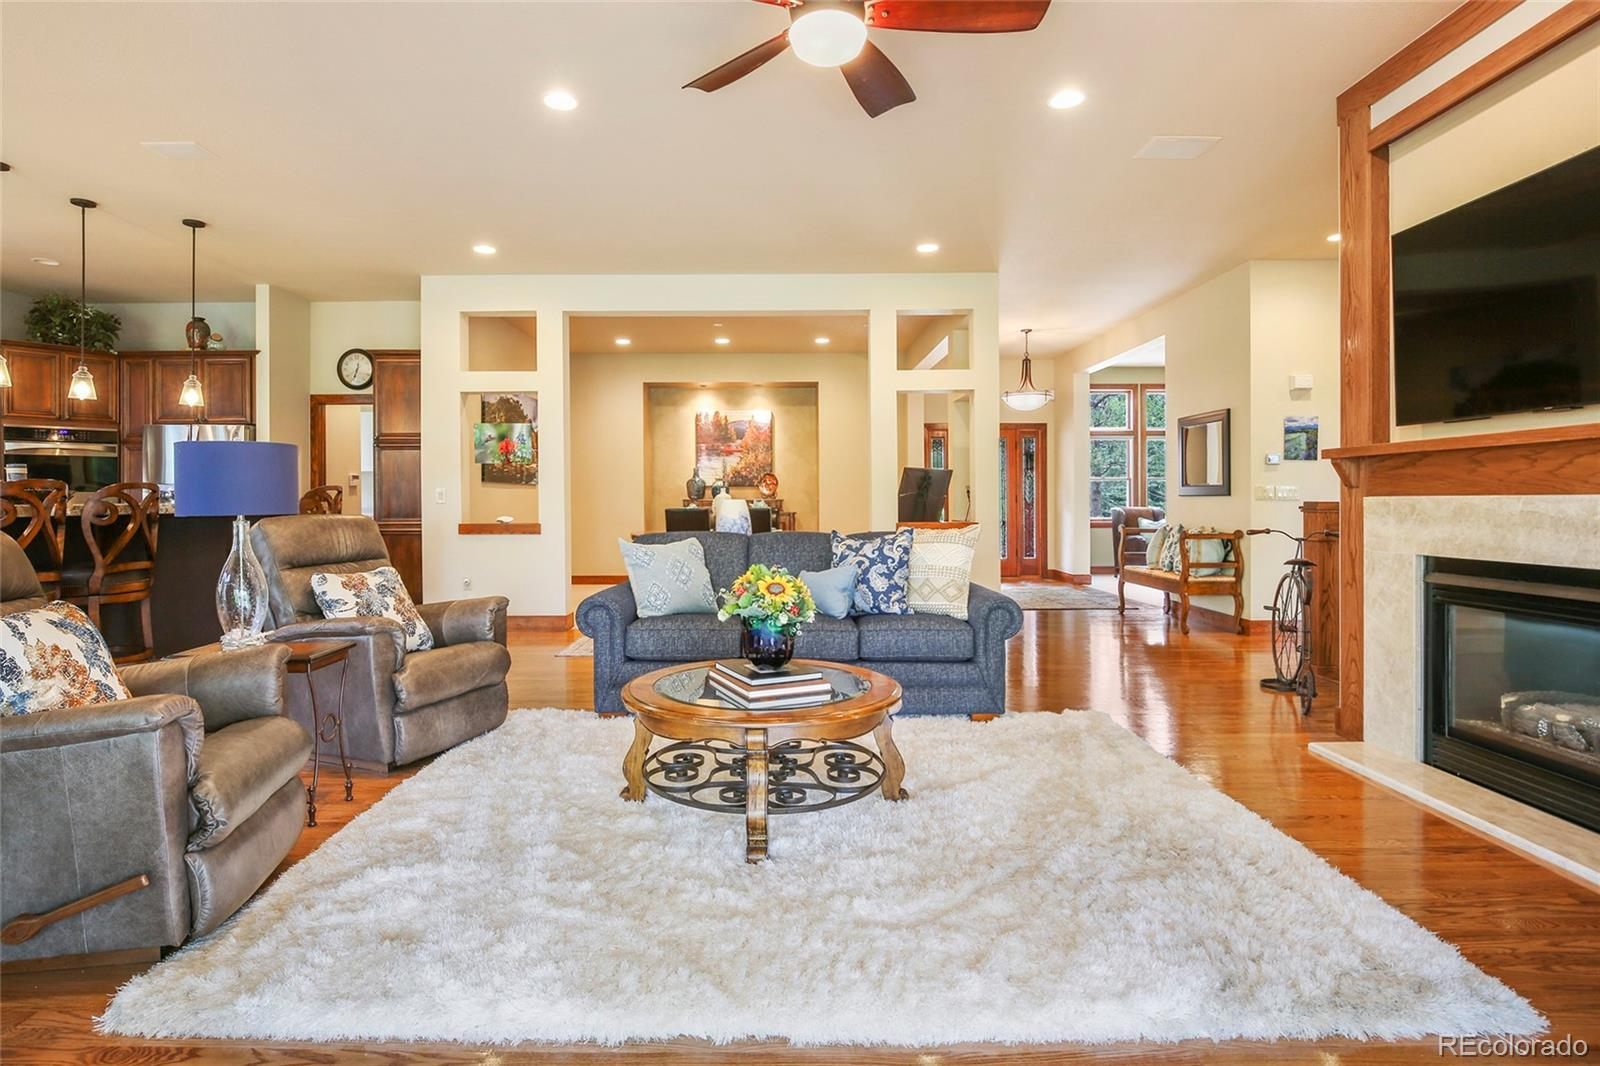 MLS# 8150320 - 9 - 1198 Forest Trails Drive, Castle Pines, CO 80108